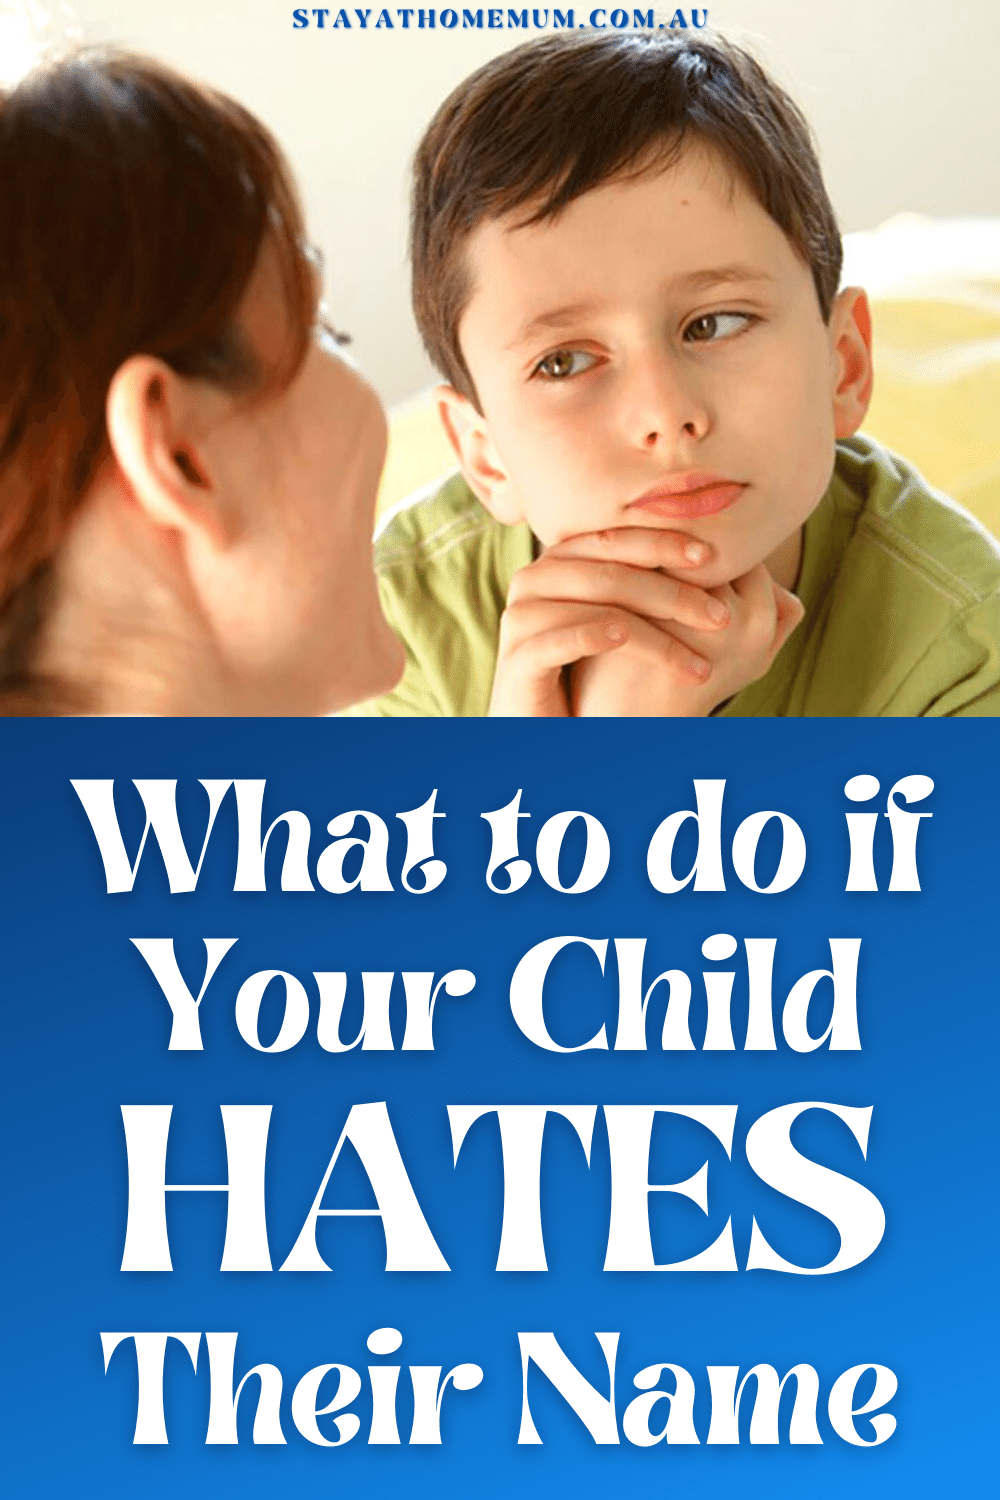 What to do if Your Child HATES Their Name | Stay At Home Mum